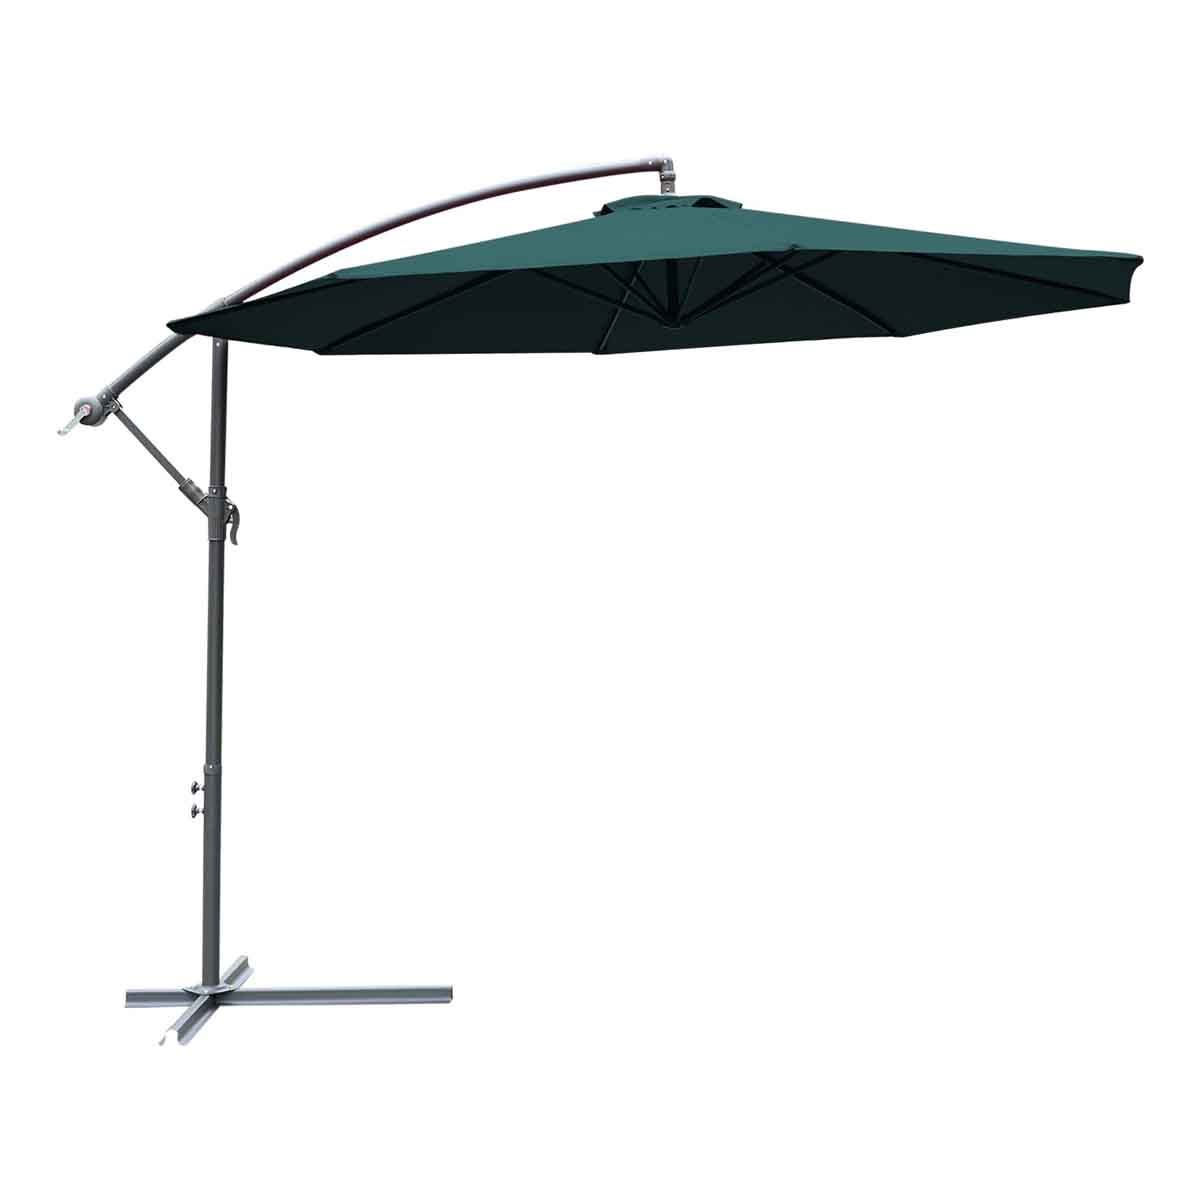 Outsunny 3m Banana Cantilever Parasol (base not included) - Green